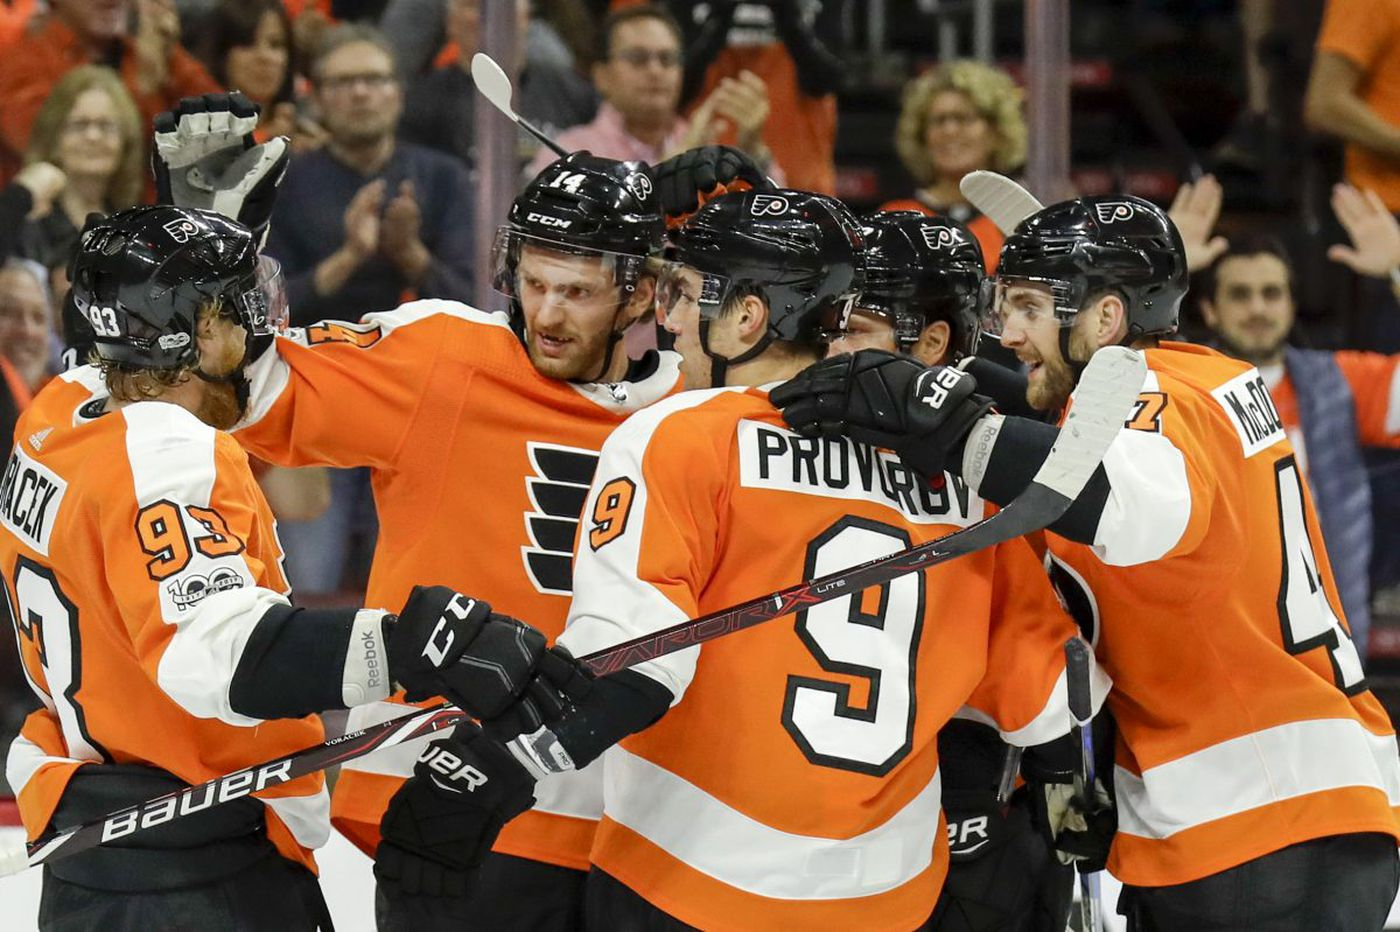 Flyers-Capitals preview: A matchup of teams that could meet in playoffs